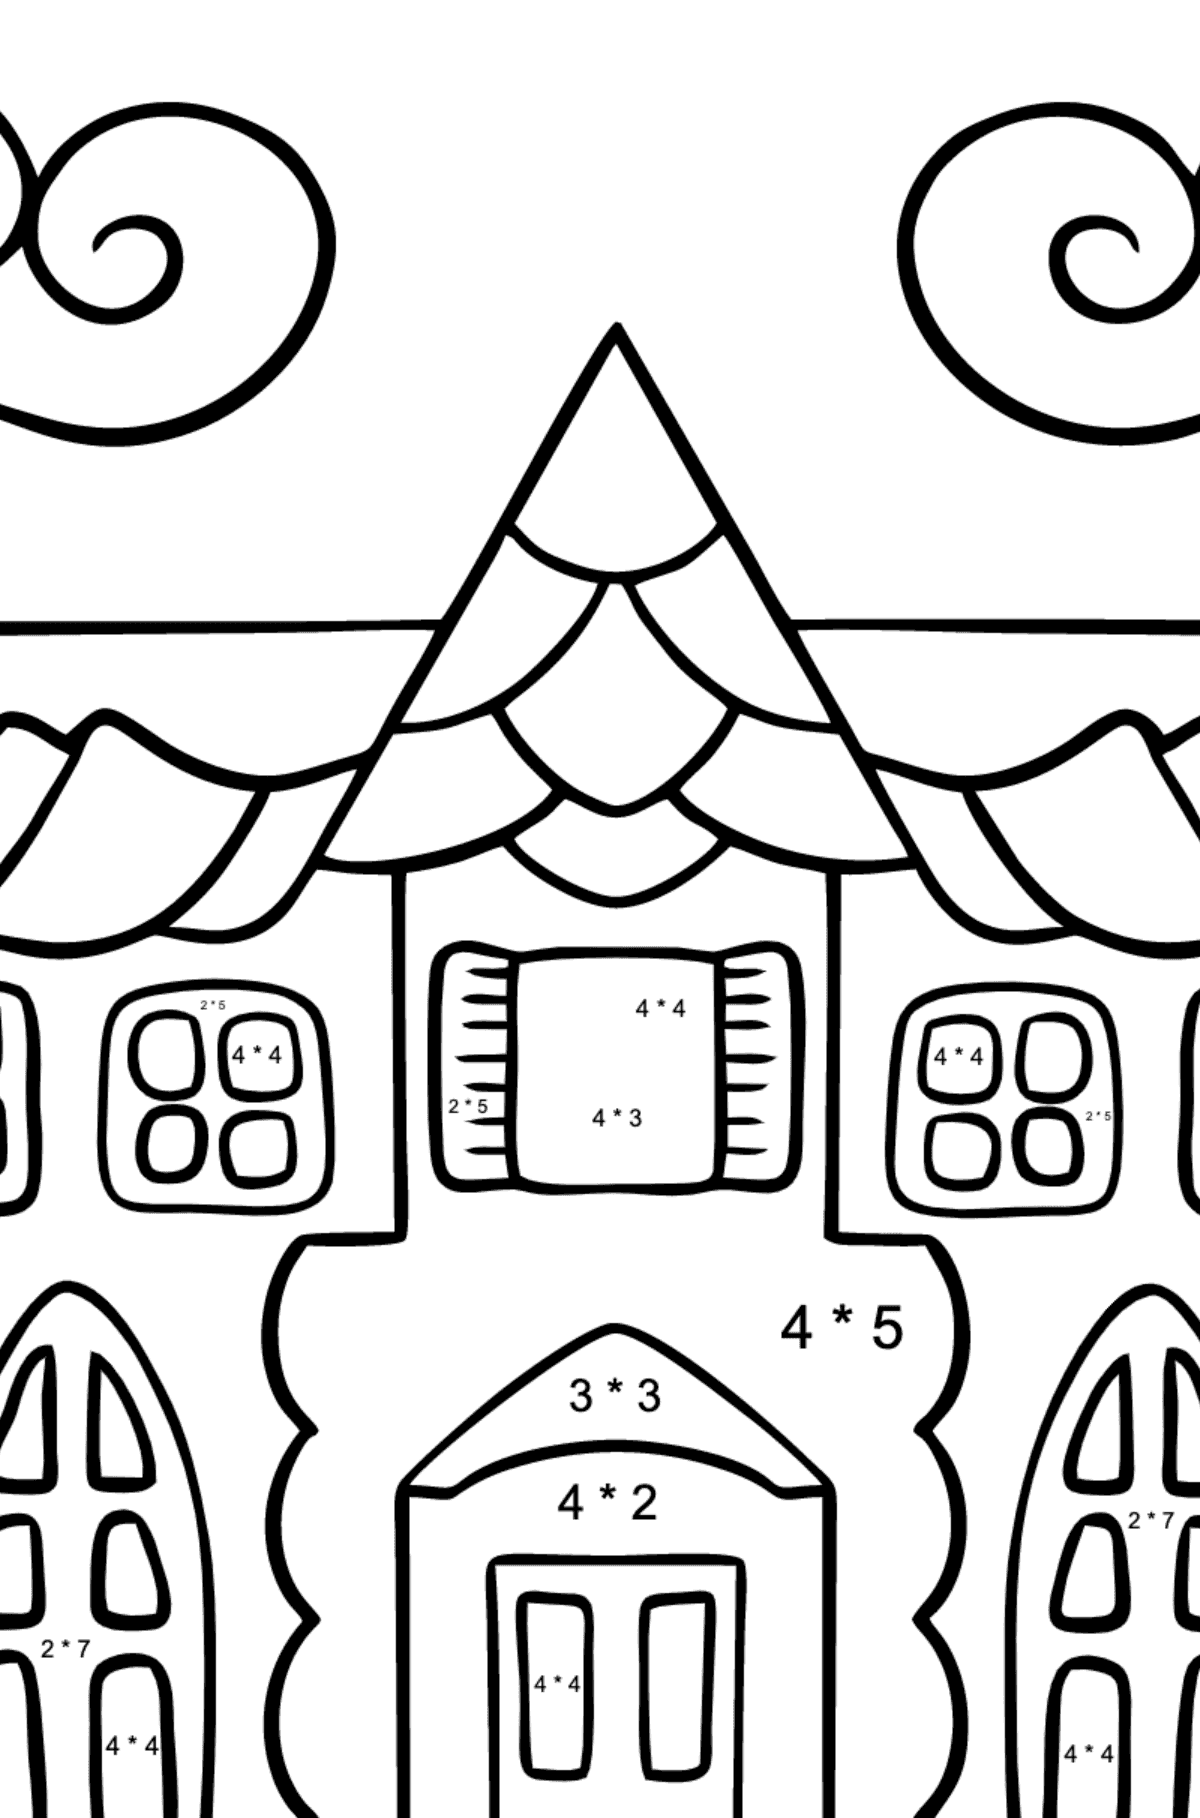 Coloring Page - A House in an Enchanted Kingdom for Kids  - Color by Number Multiplication